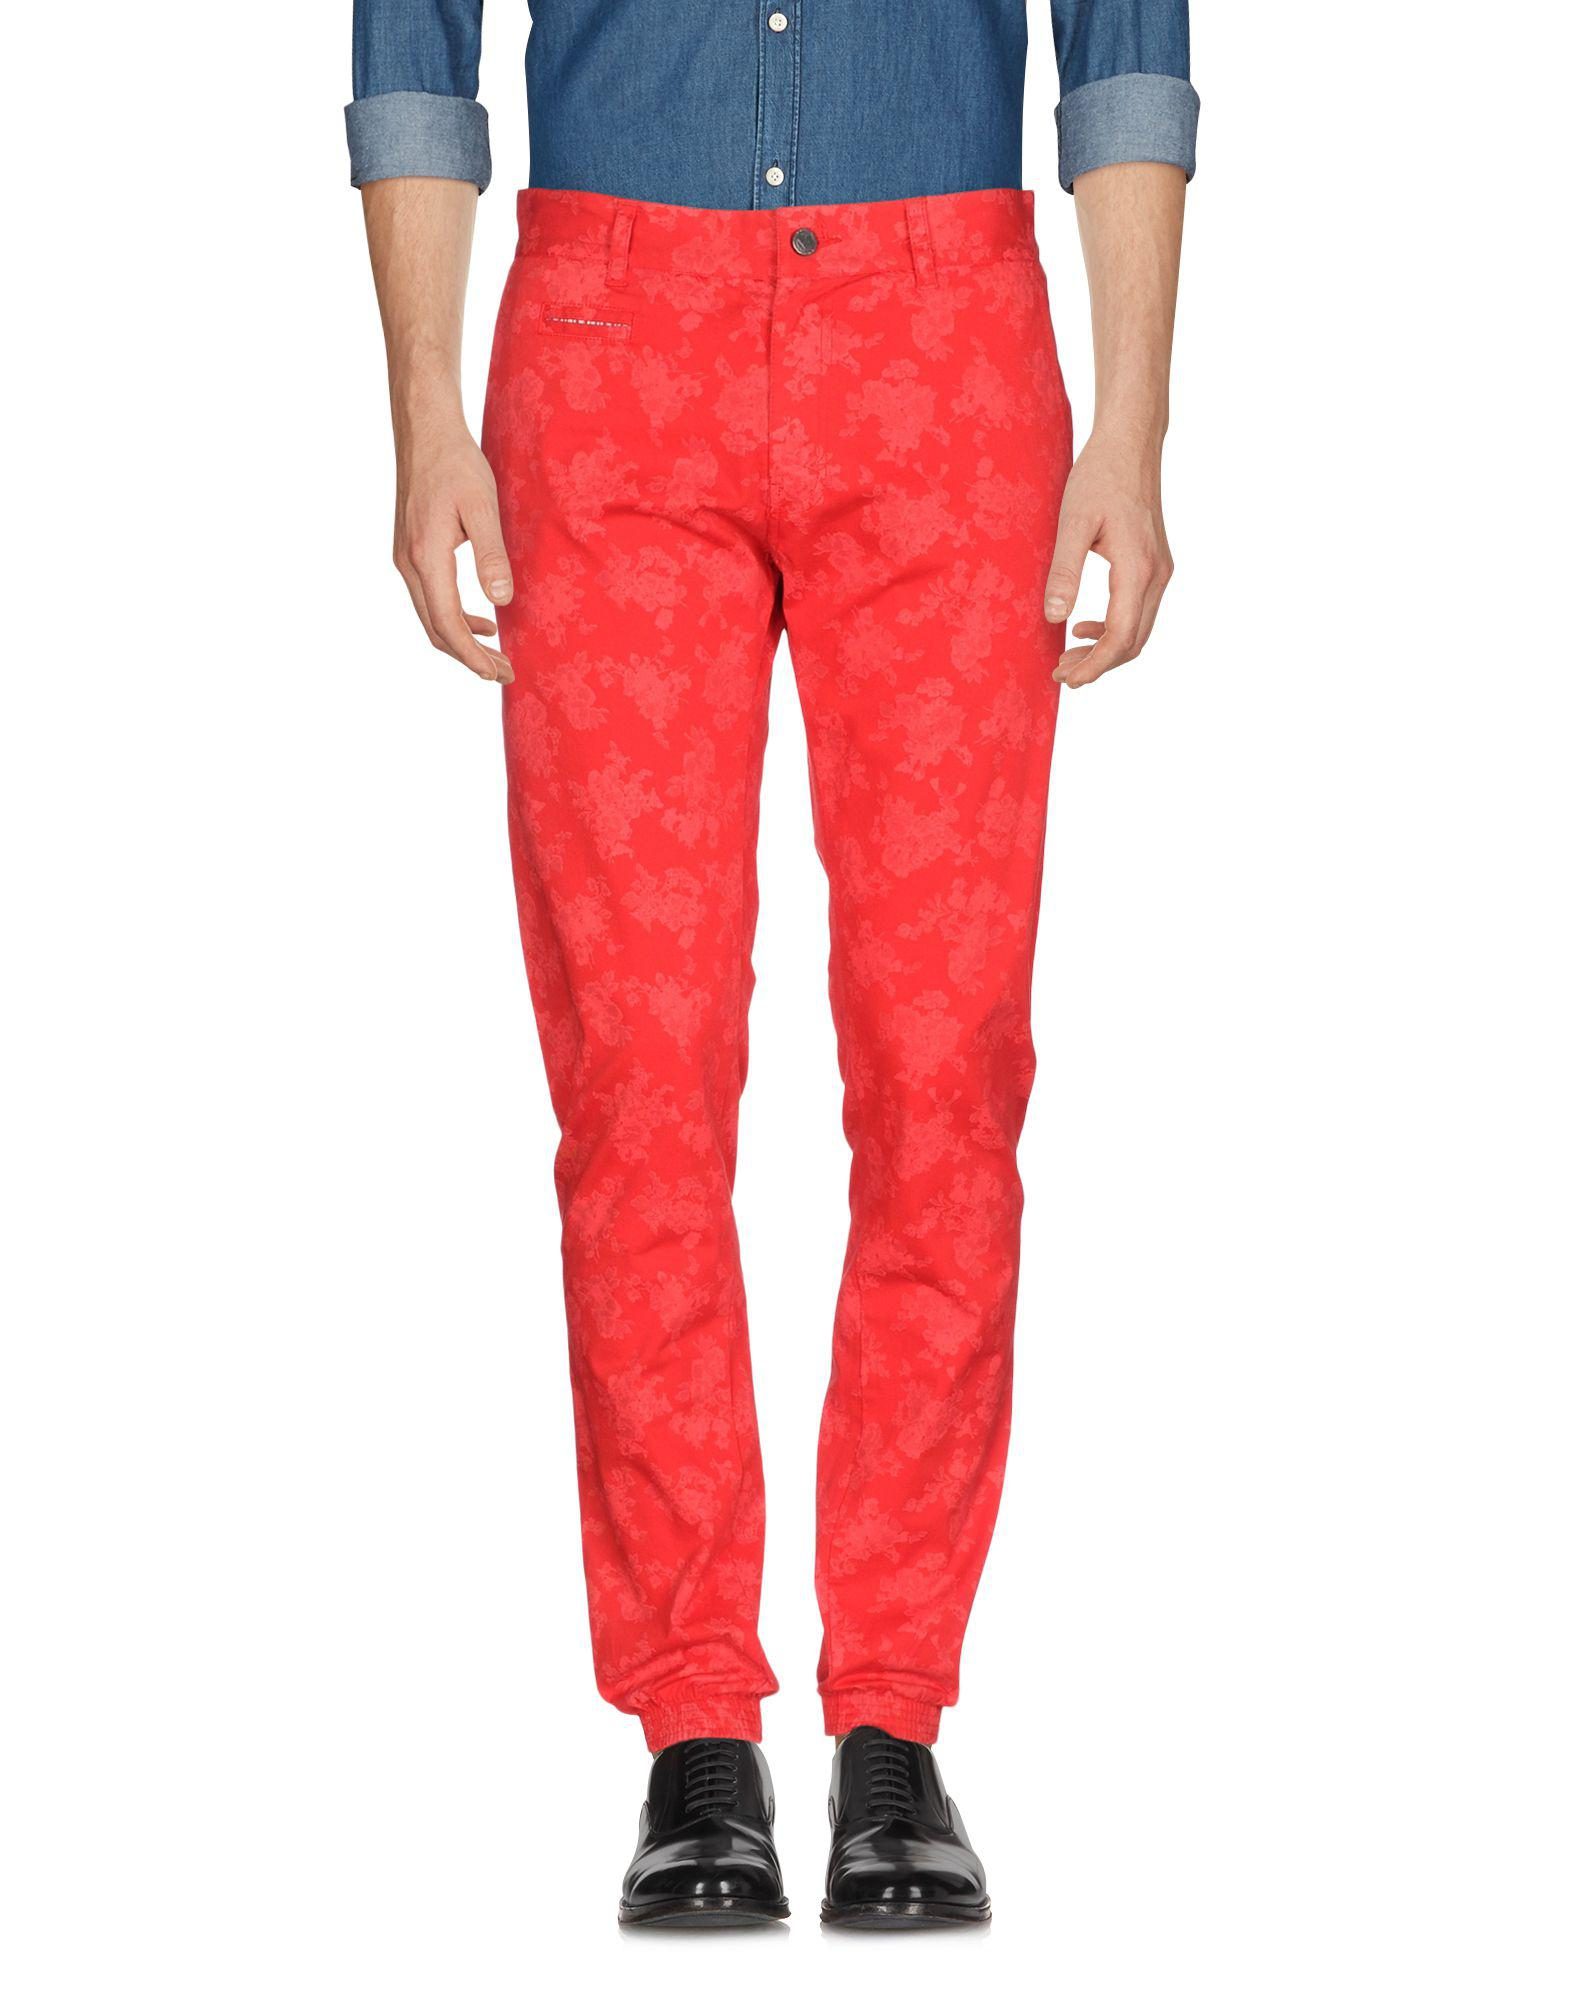 TROUSERS - Casual trousers Iuter Sale Discounts Discount Outlet Cheap Price Original From China Cheap Price ysSXCF1